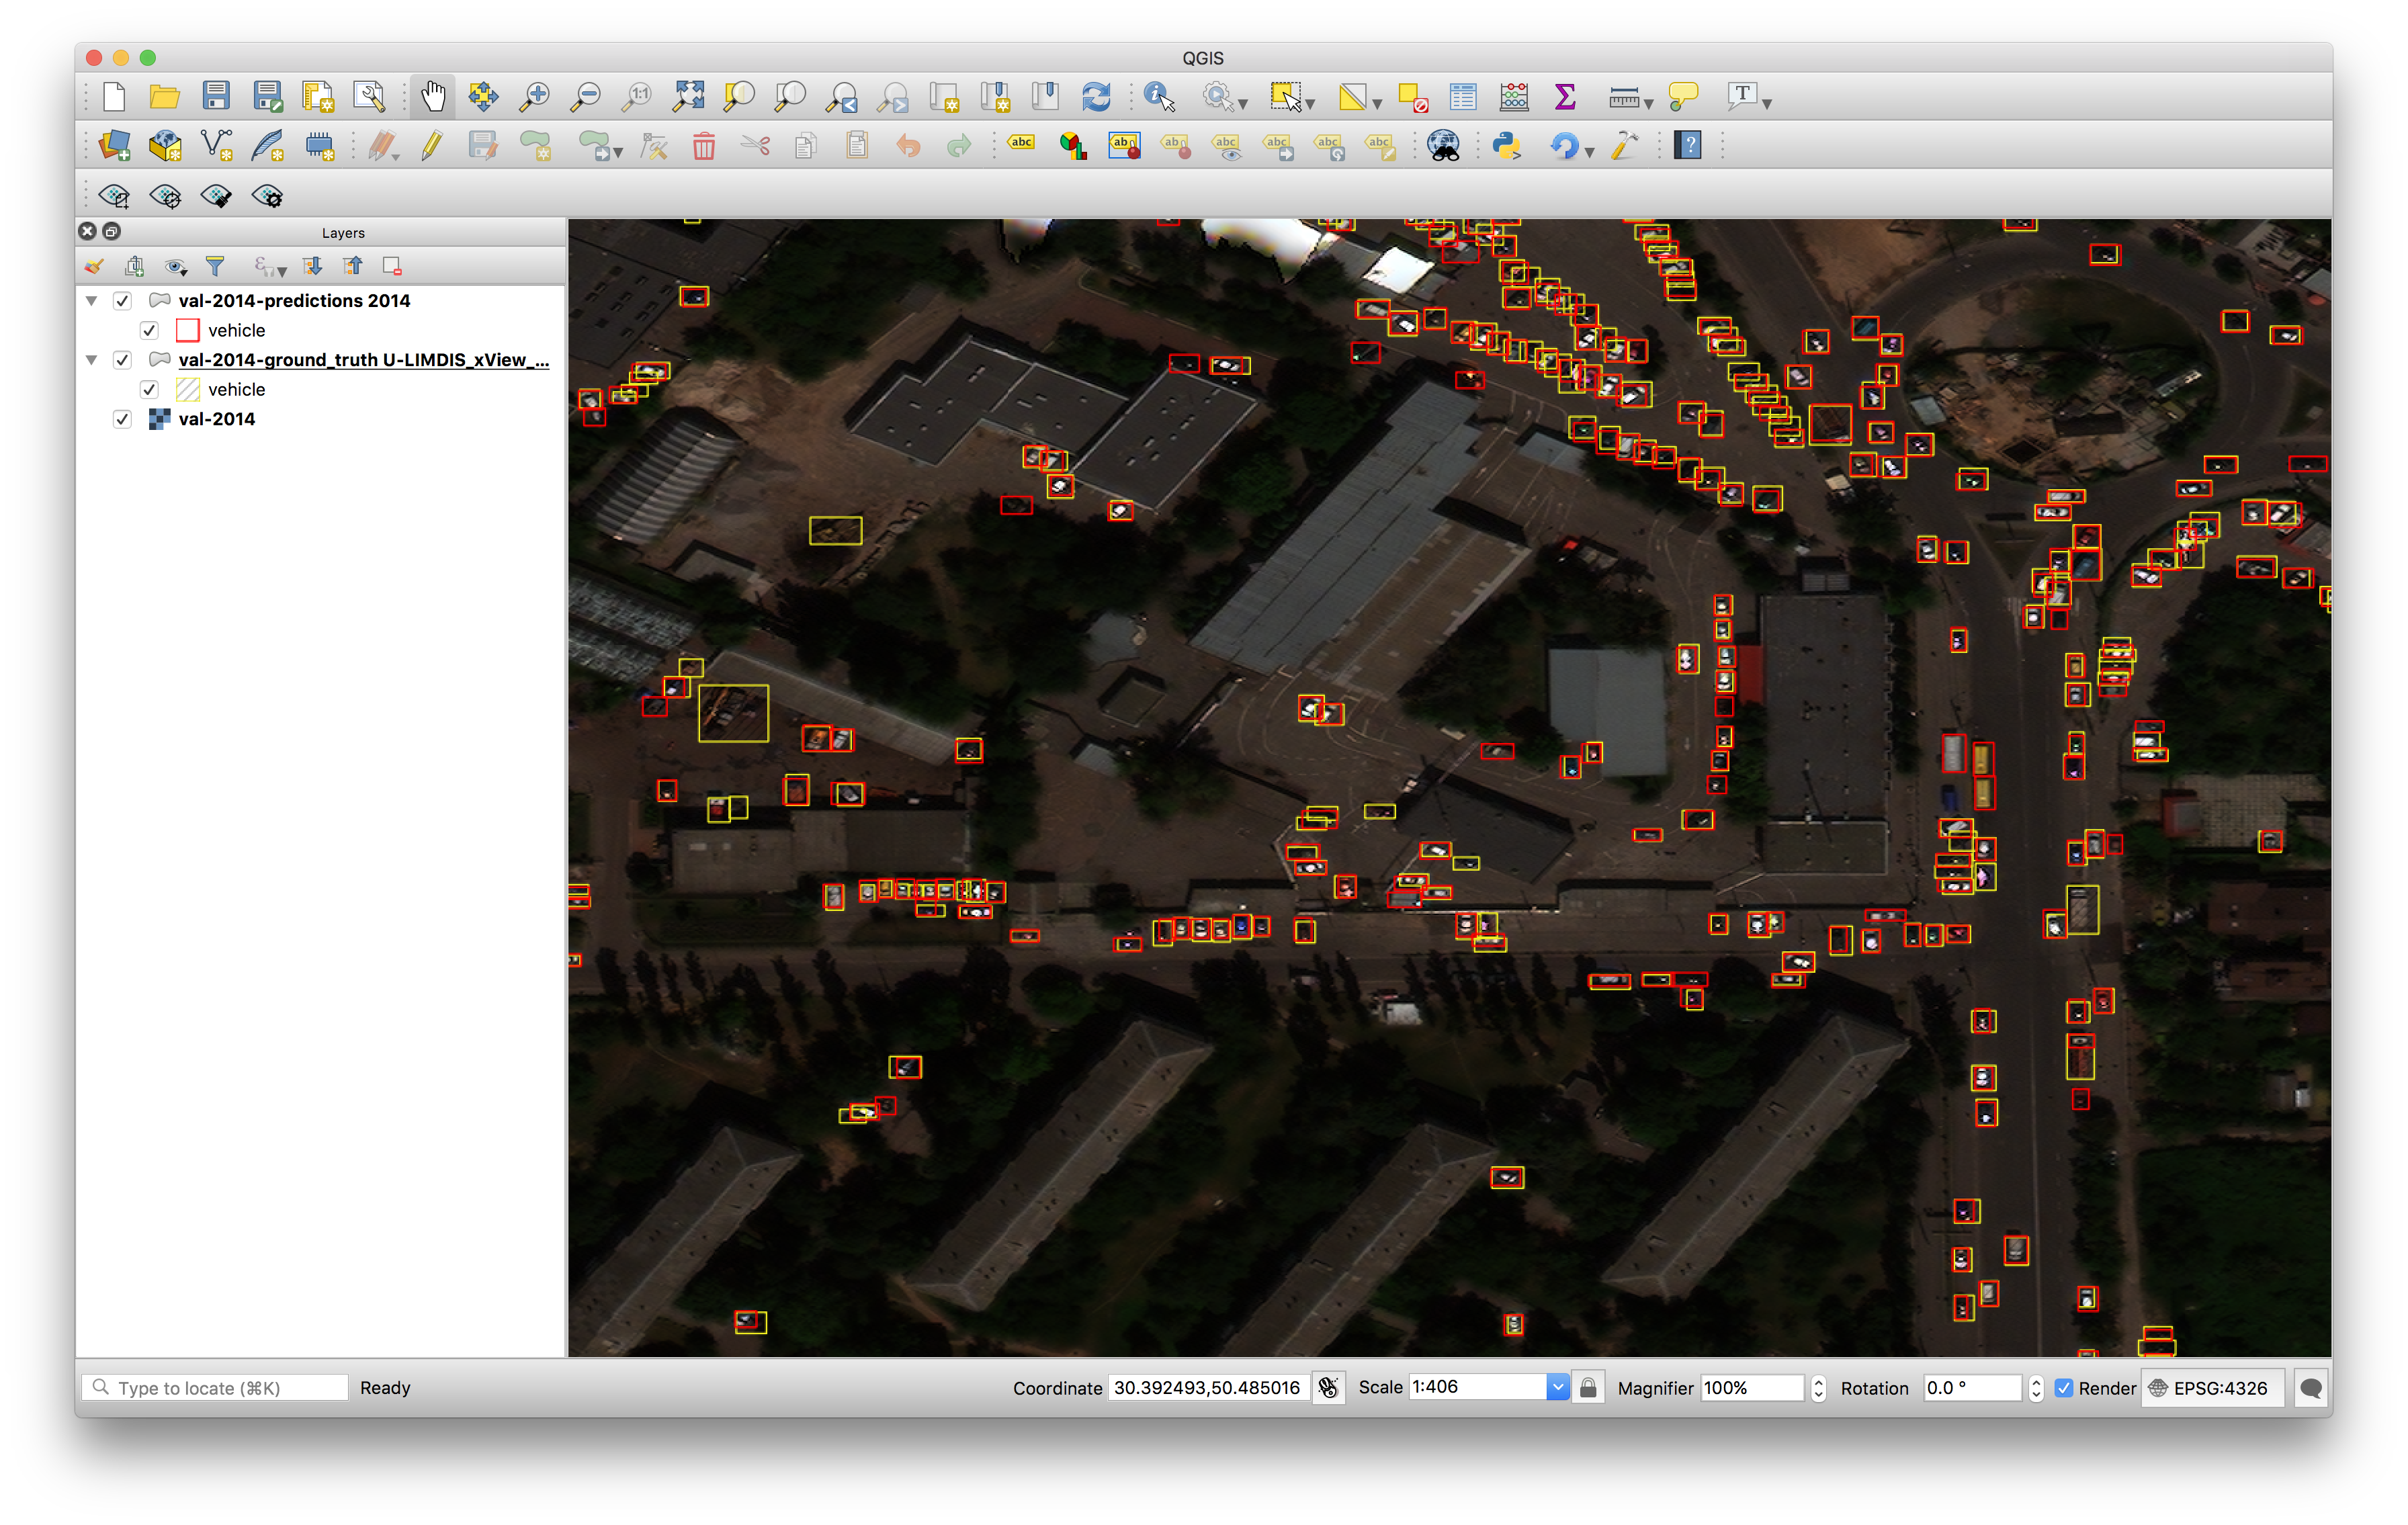 QGIS Plugin — Raster Vision Documentation (0 9)